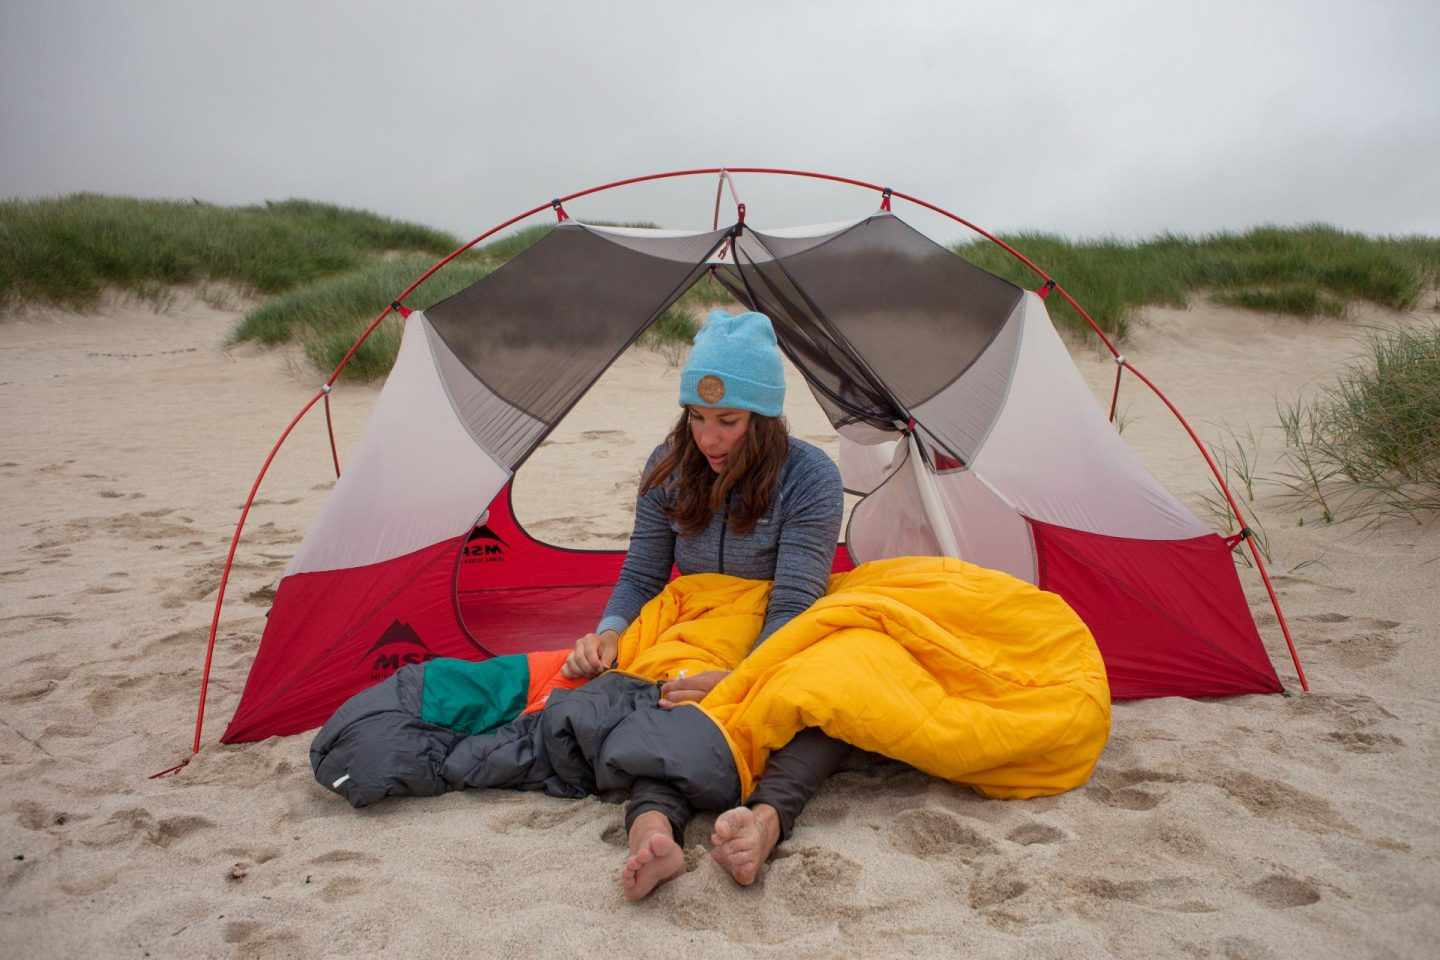 How to look after outdoor kit: cleaning, maintenance and repair for tents